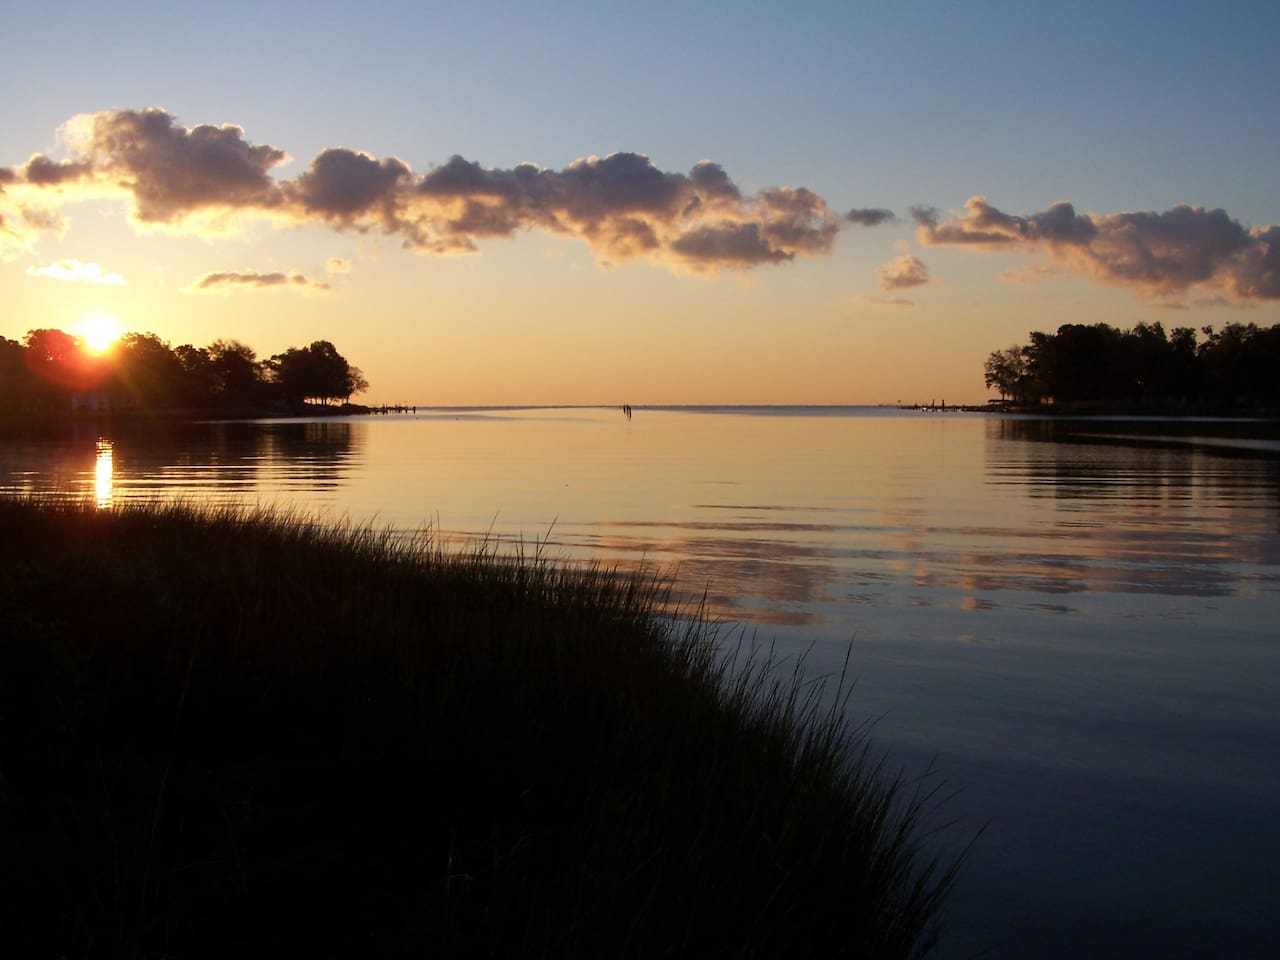 Sunrise over the Chesapeake Bay and Broadwater Creek from Light Landing